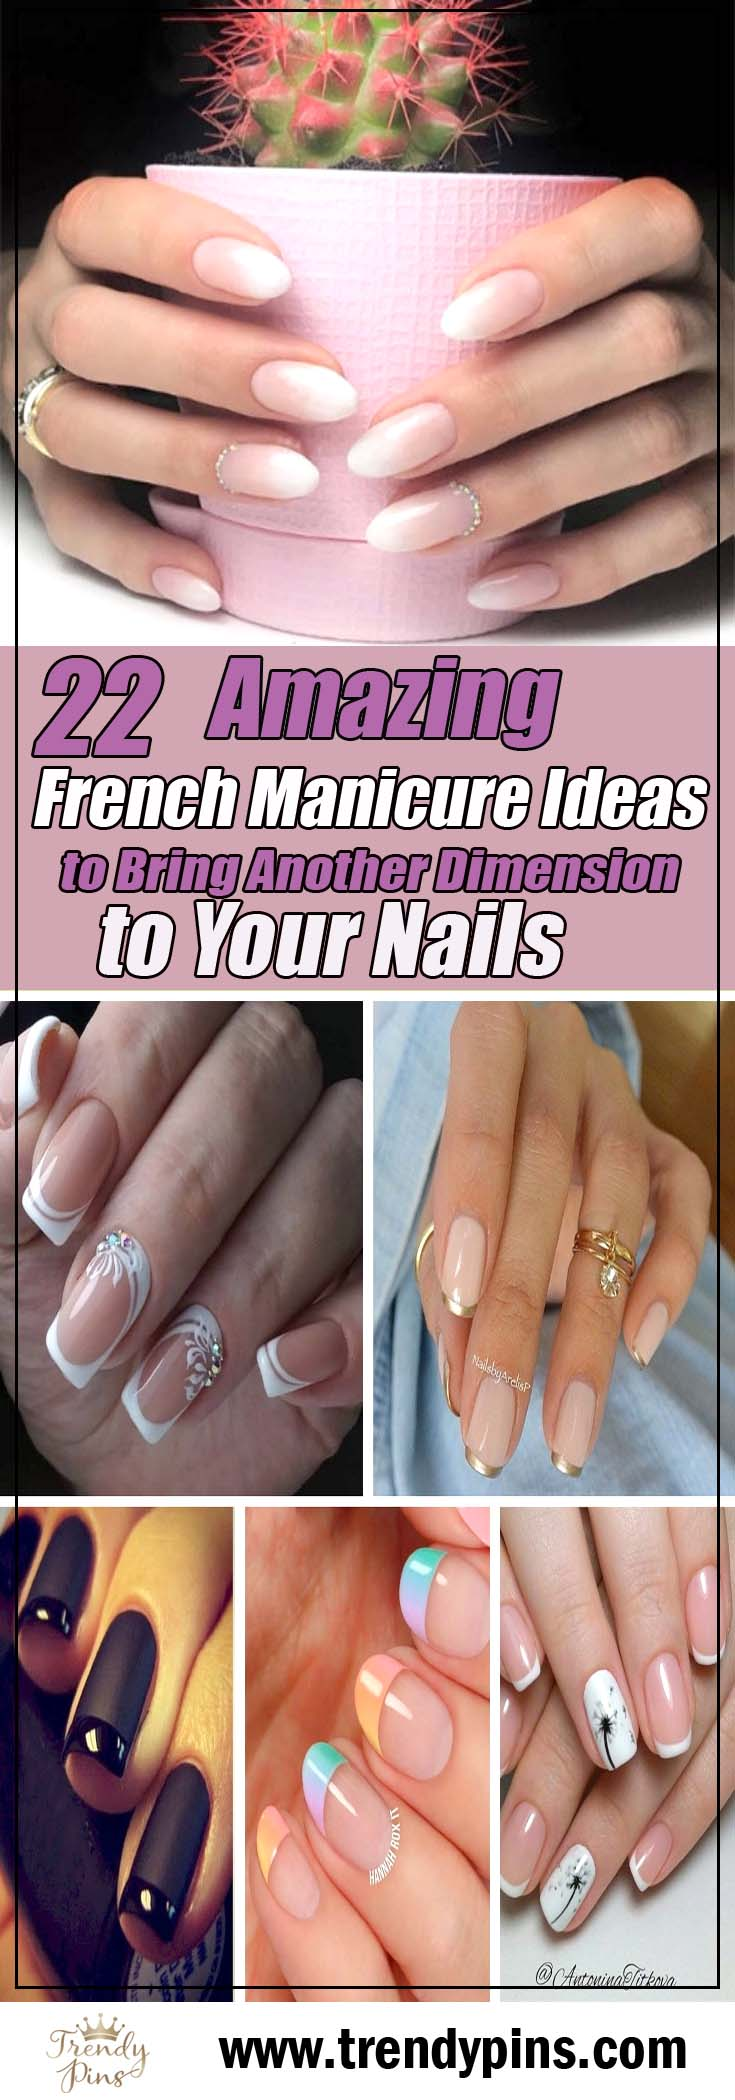 22 amazing french manicure ideas to bring another dimension to your nails #french manicure #nails #beauty #trendypins